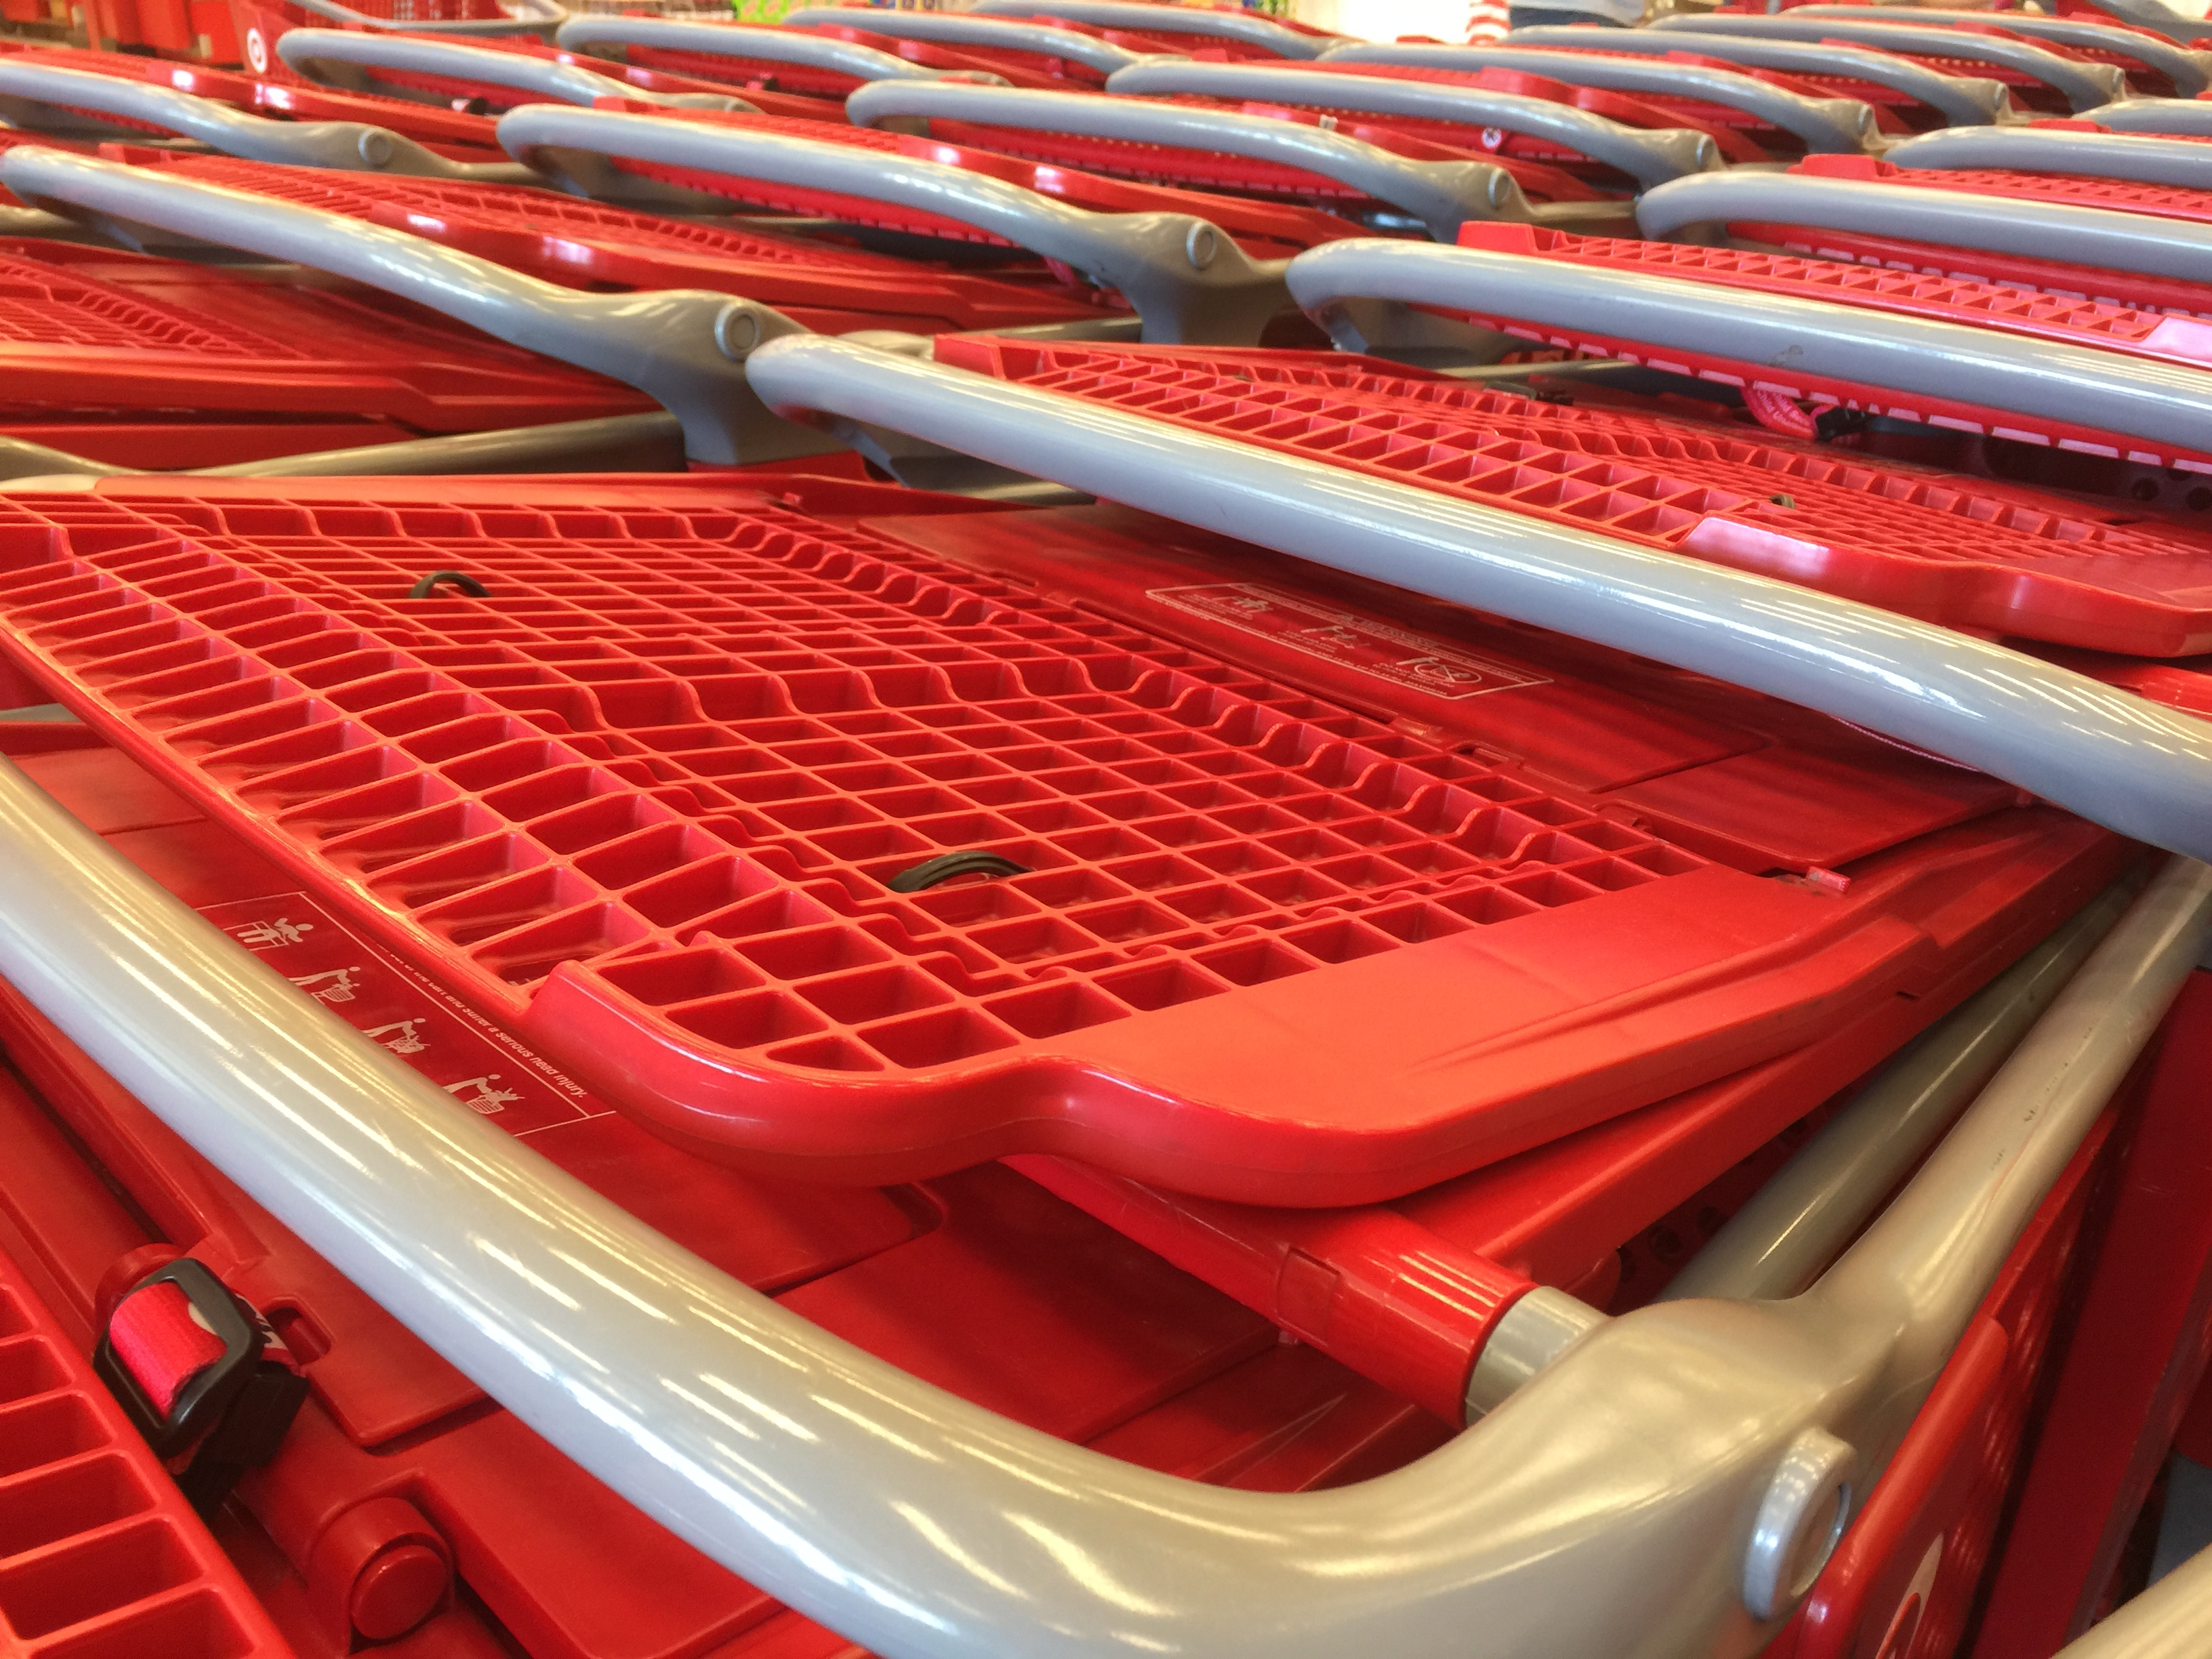 A good close up shot of shopping carts. Specifically TARGET shopping carts. Aesthetically pleasing.